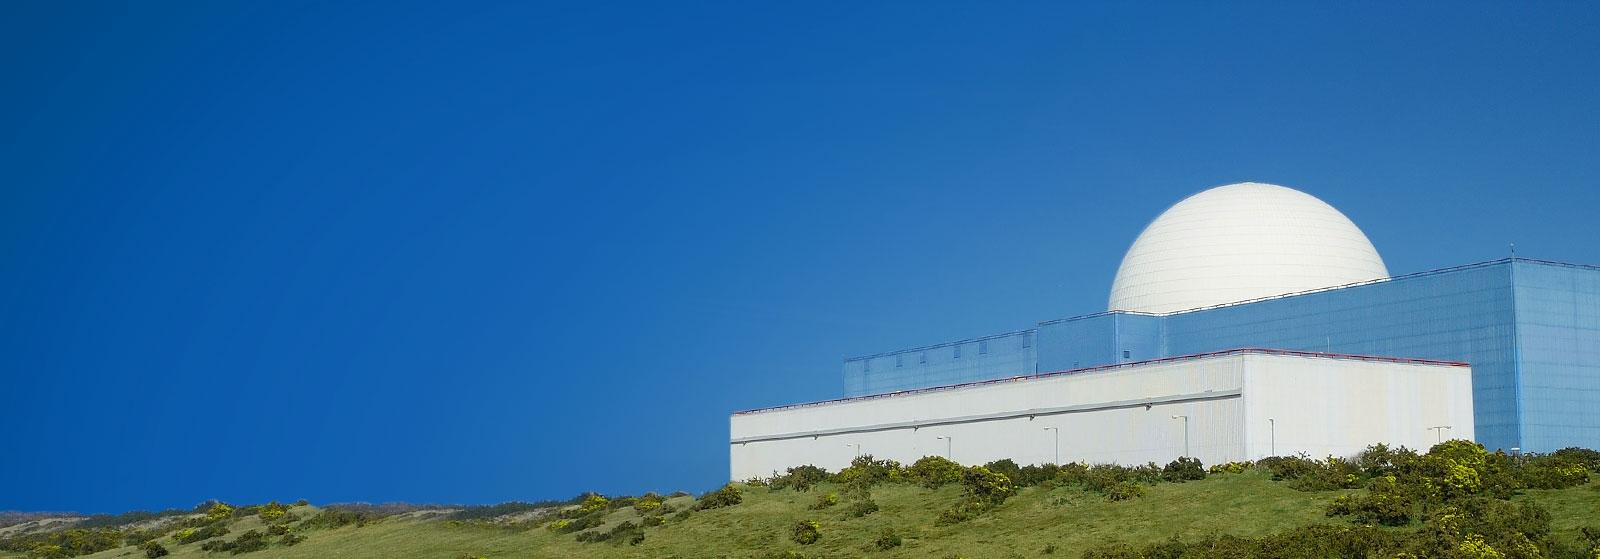 Picture of a nuclear power station in clear blue sky